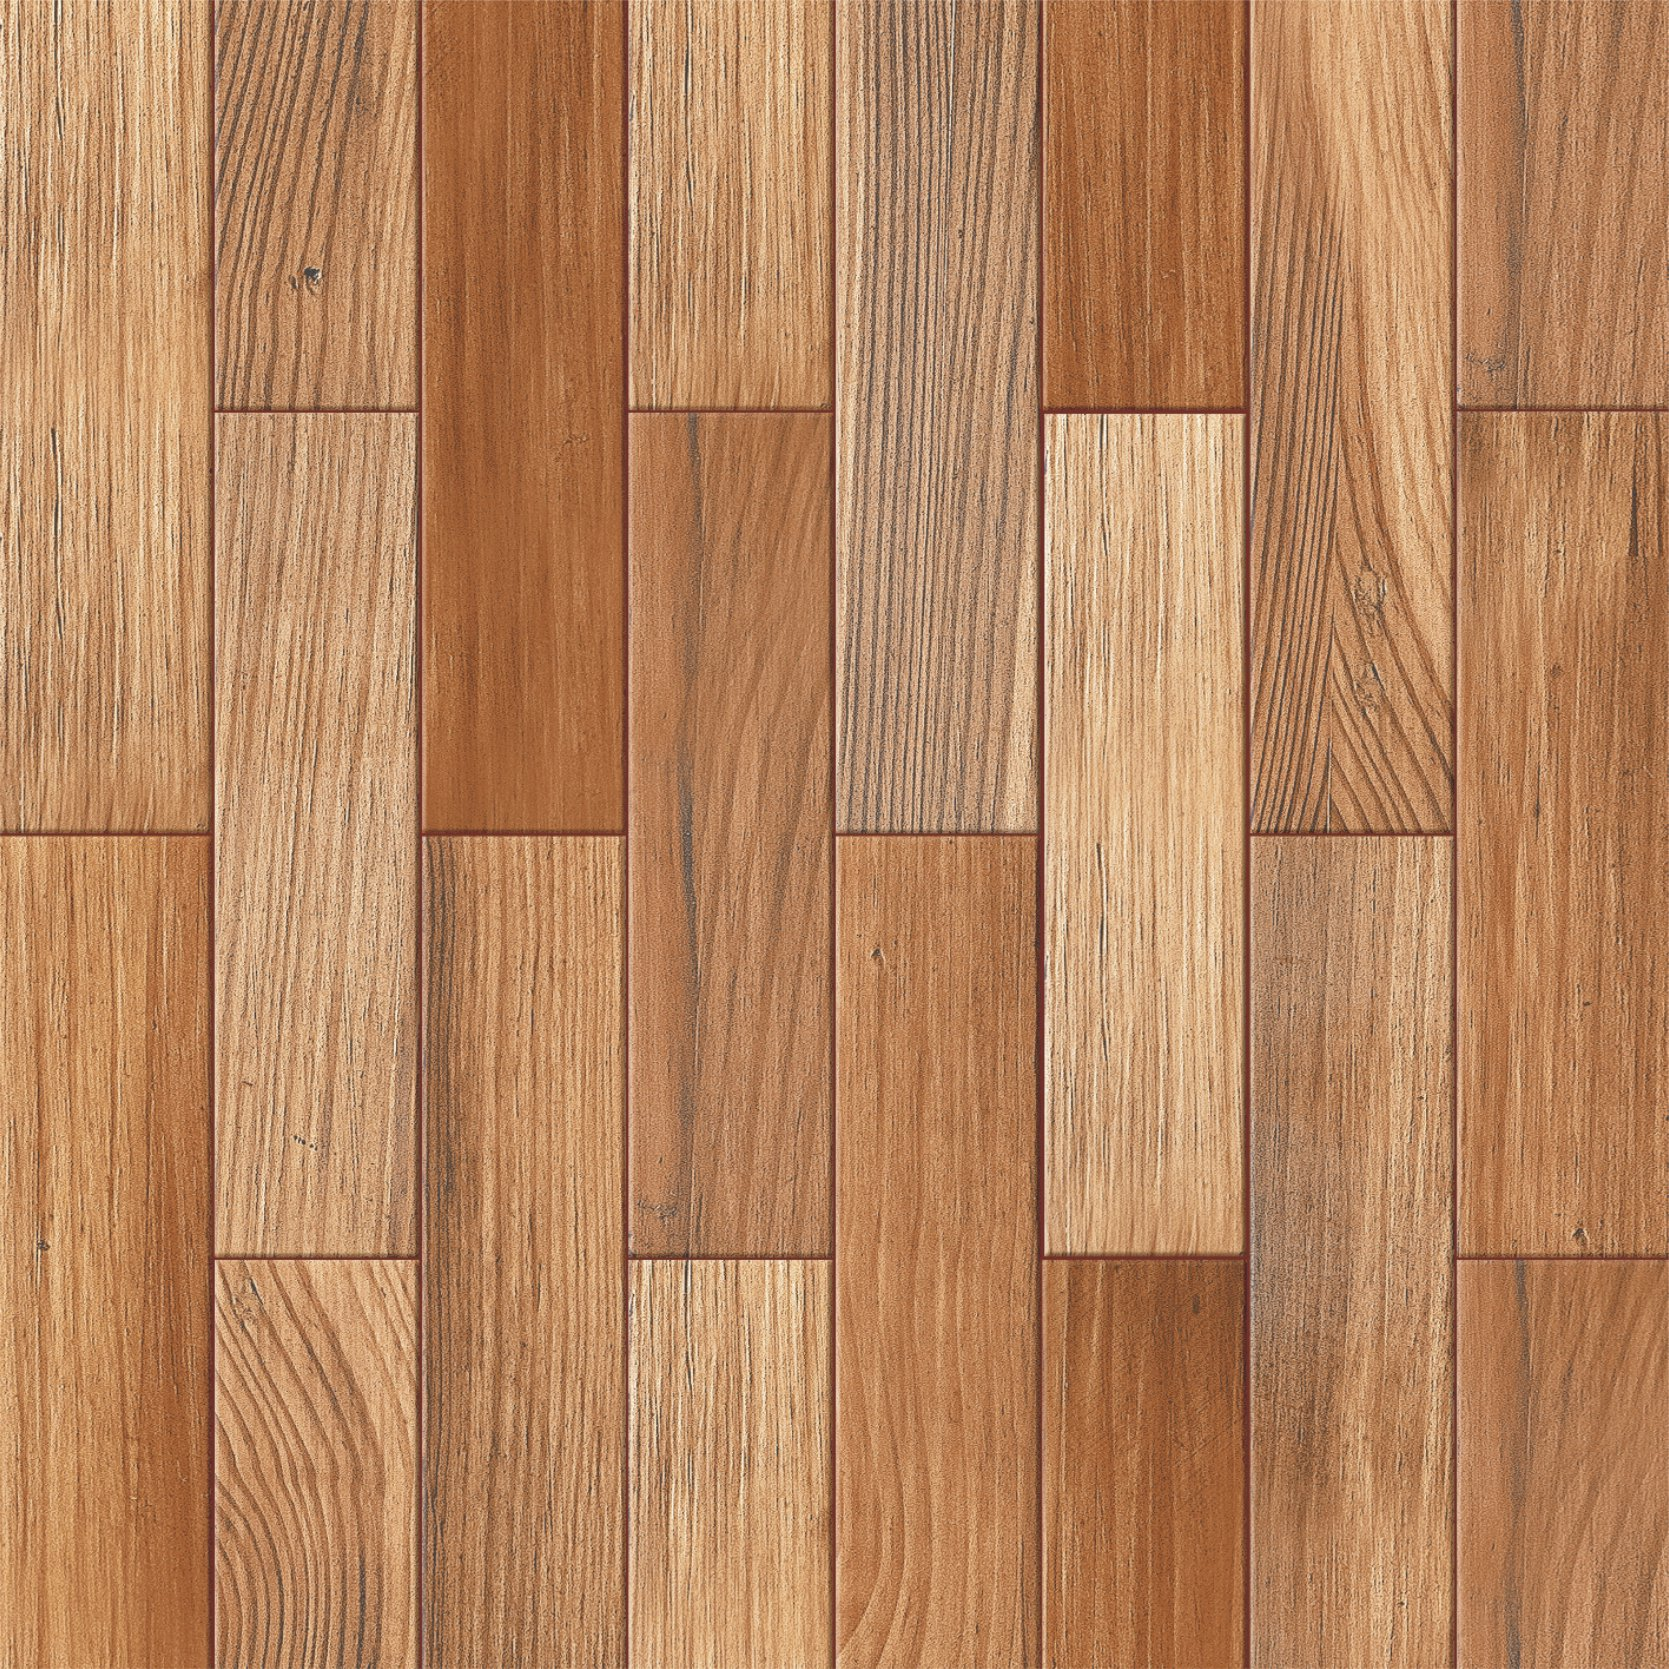 600MMX600MM Wood FLOOR TILES 4509 Porcelain TilesFloor